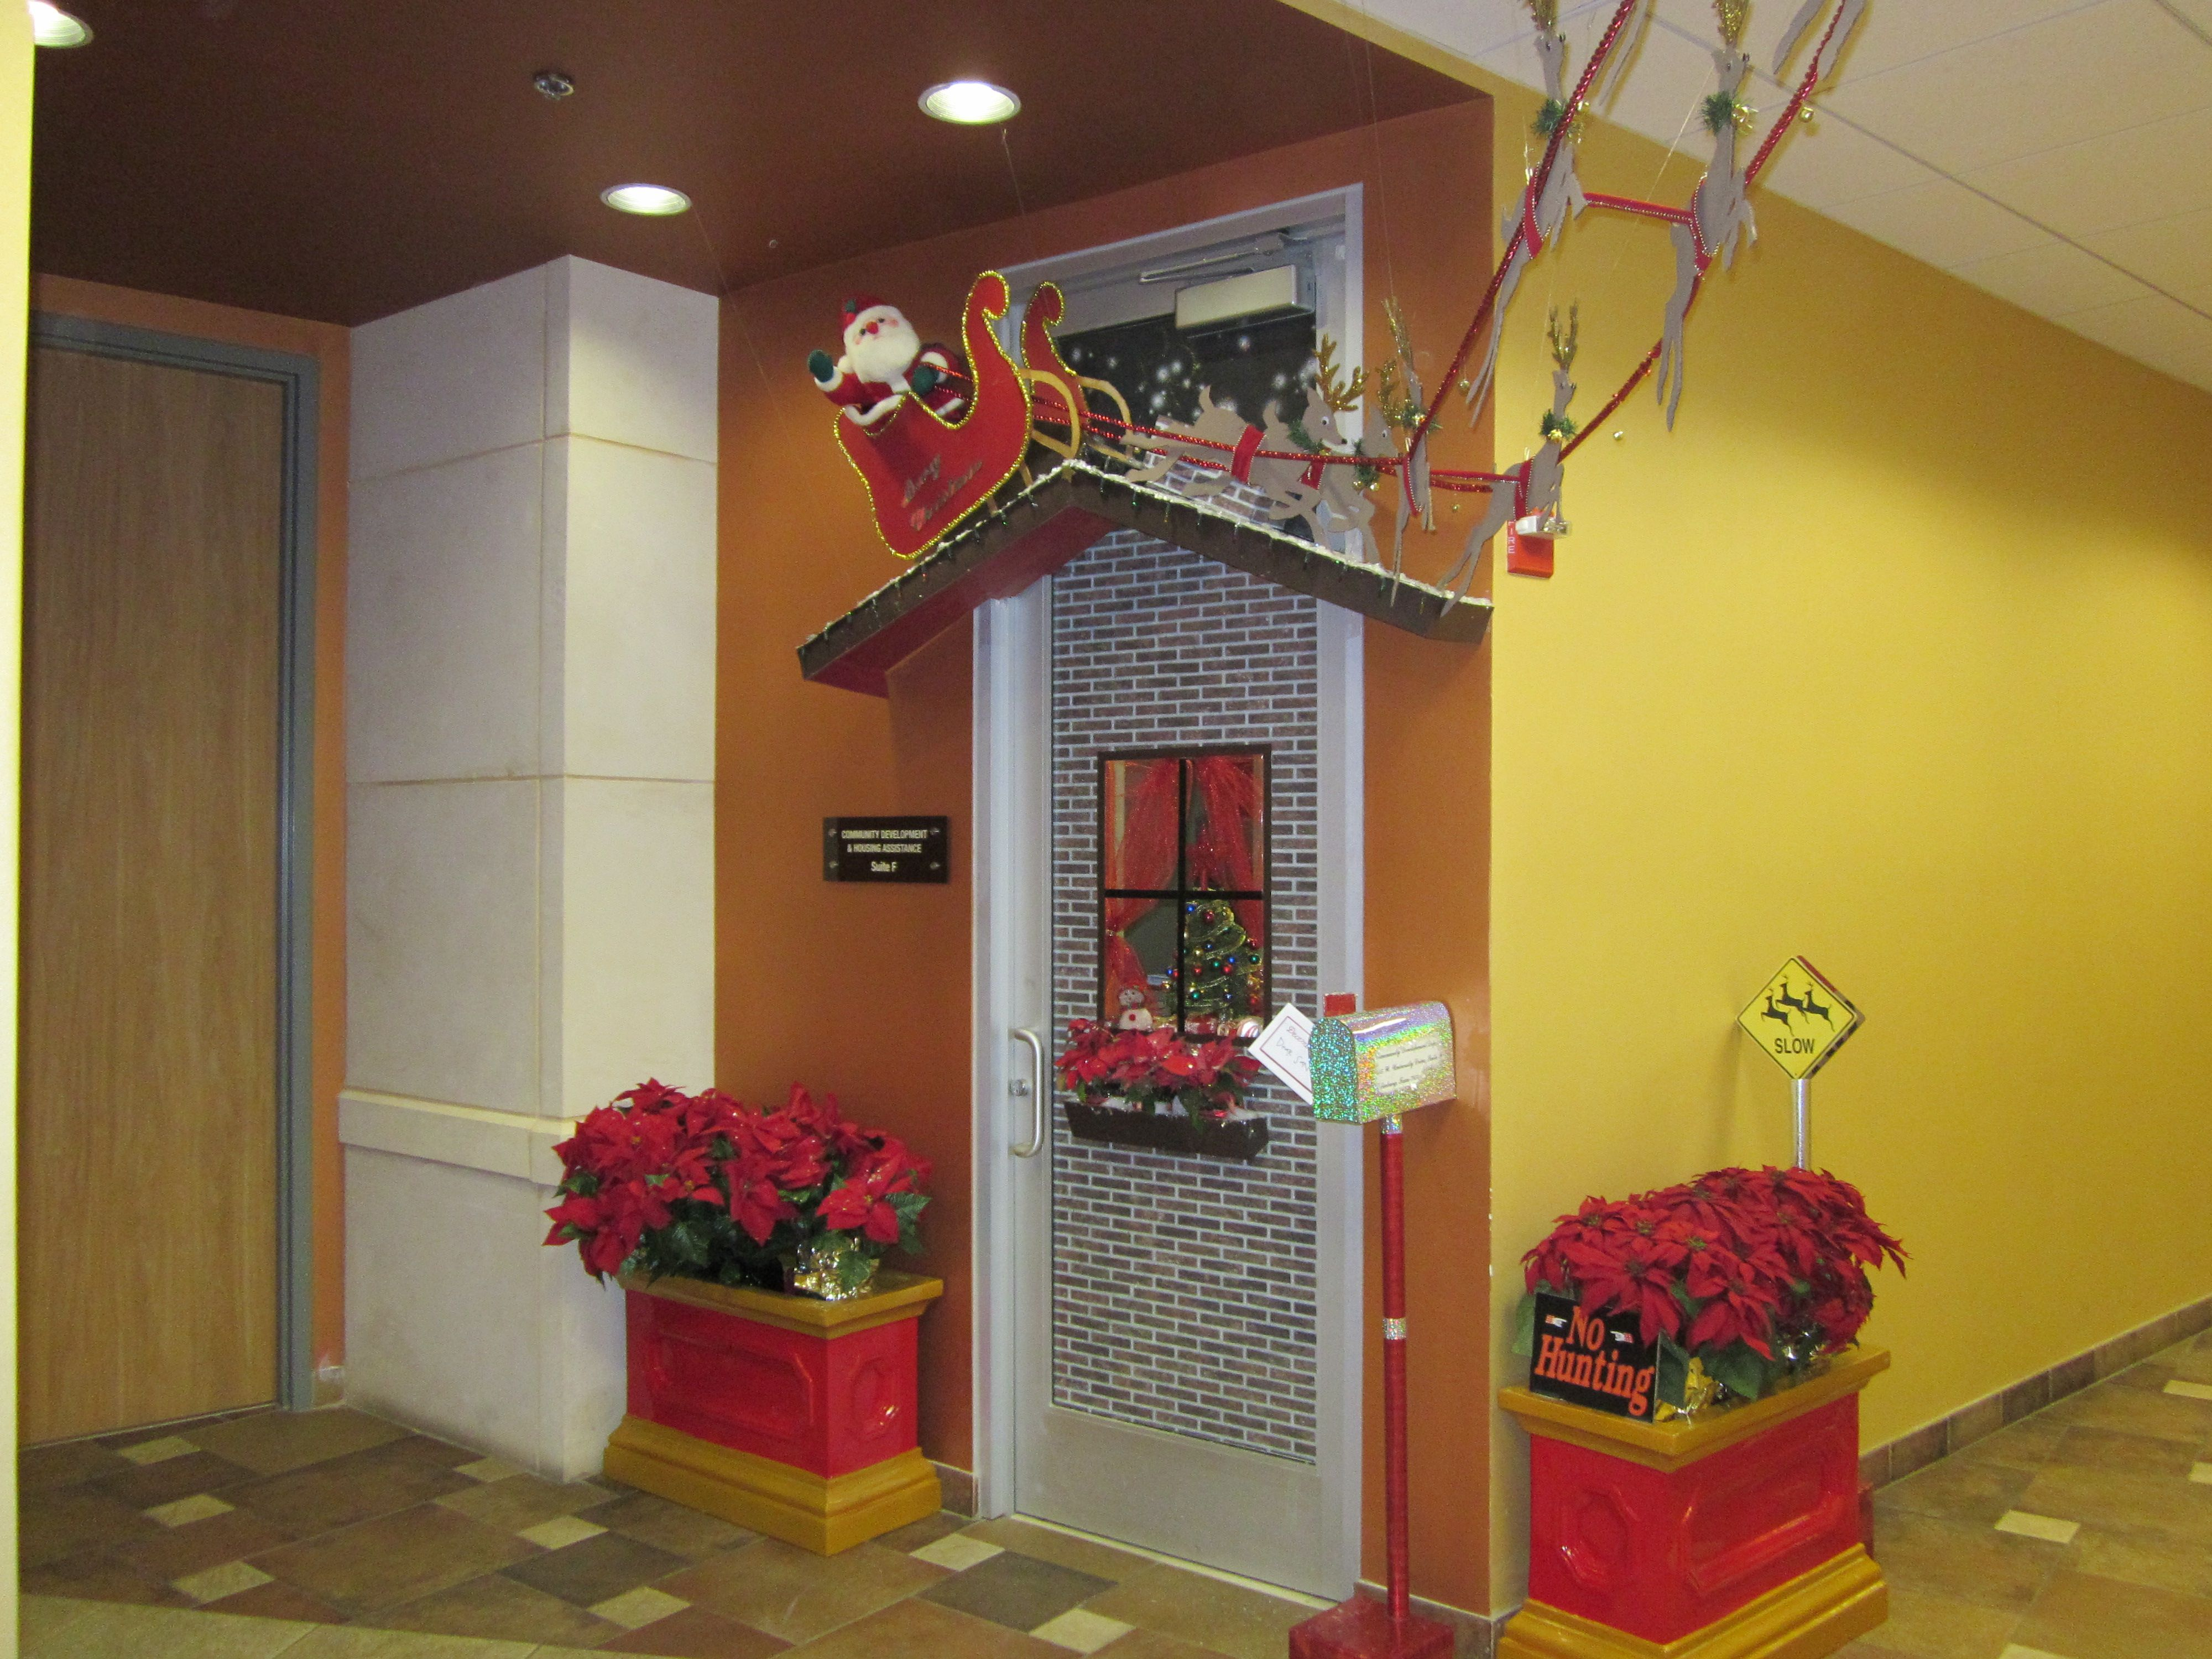 Christmas Decorating Ideas For Office Door Contest | Christmas ...